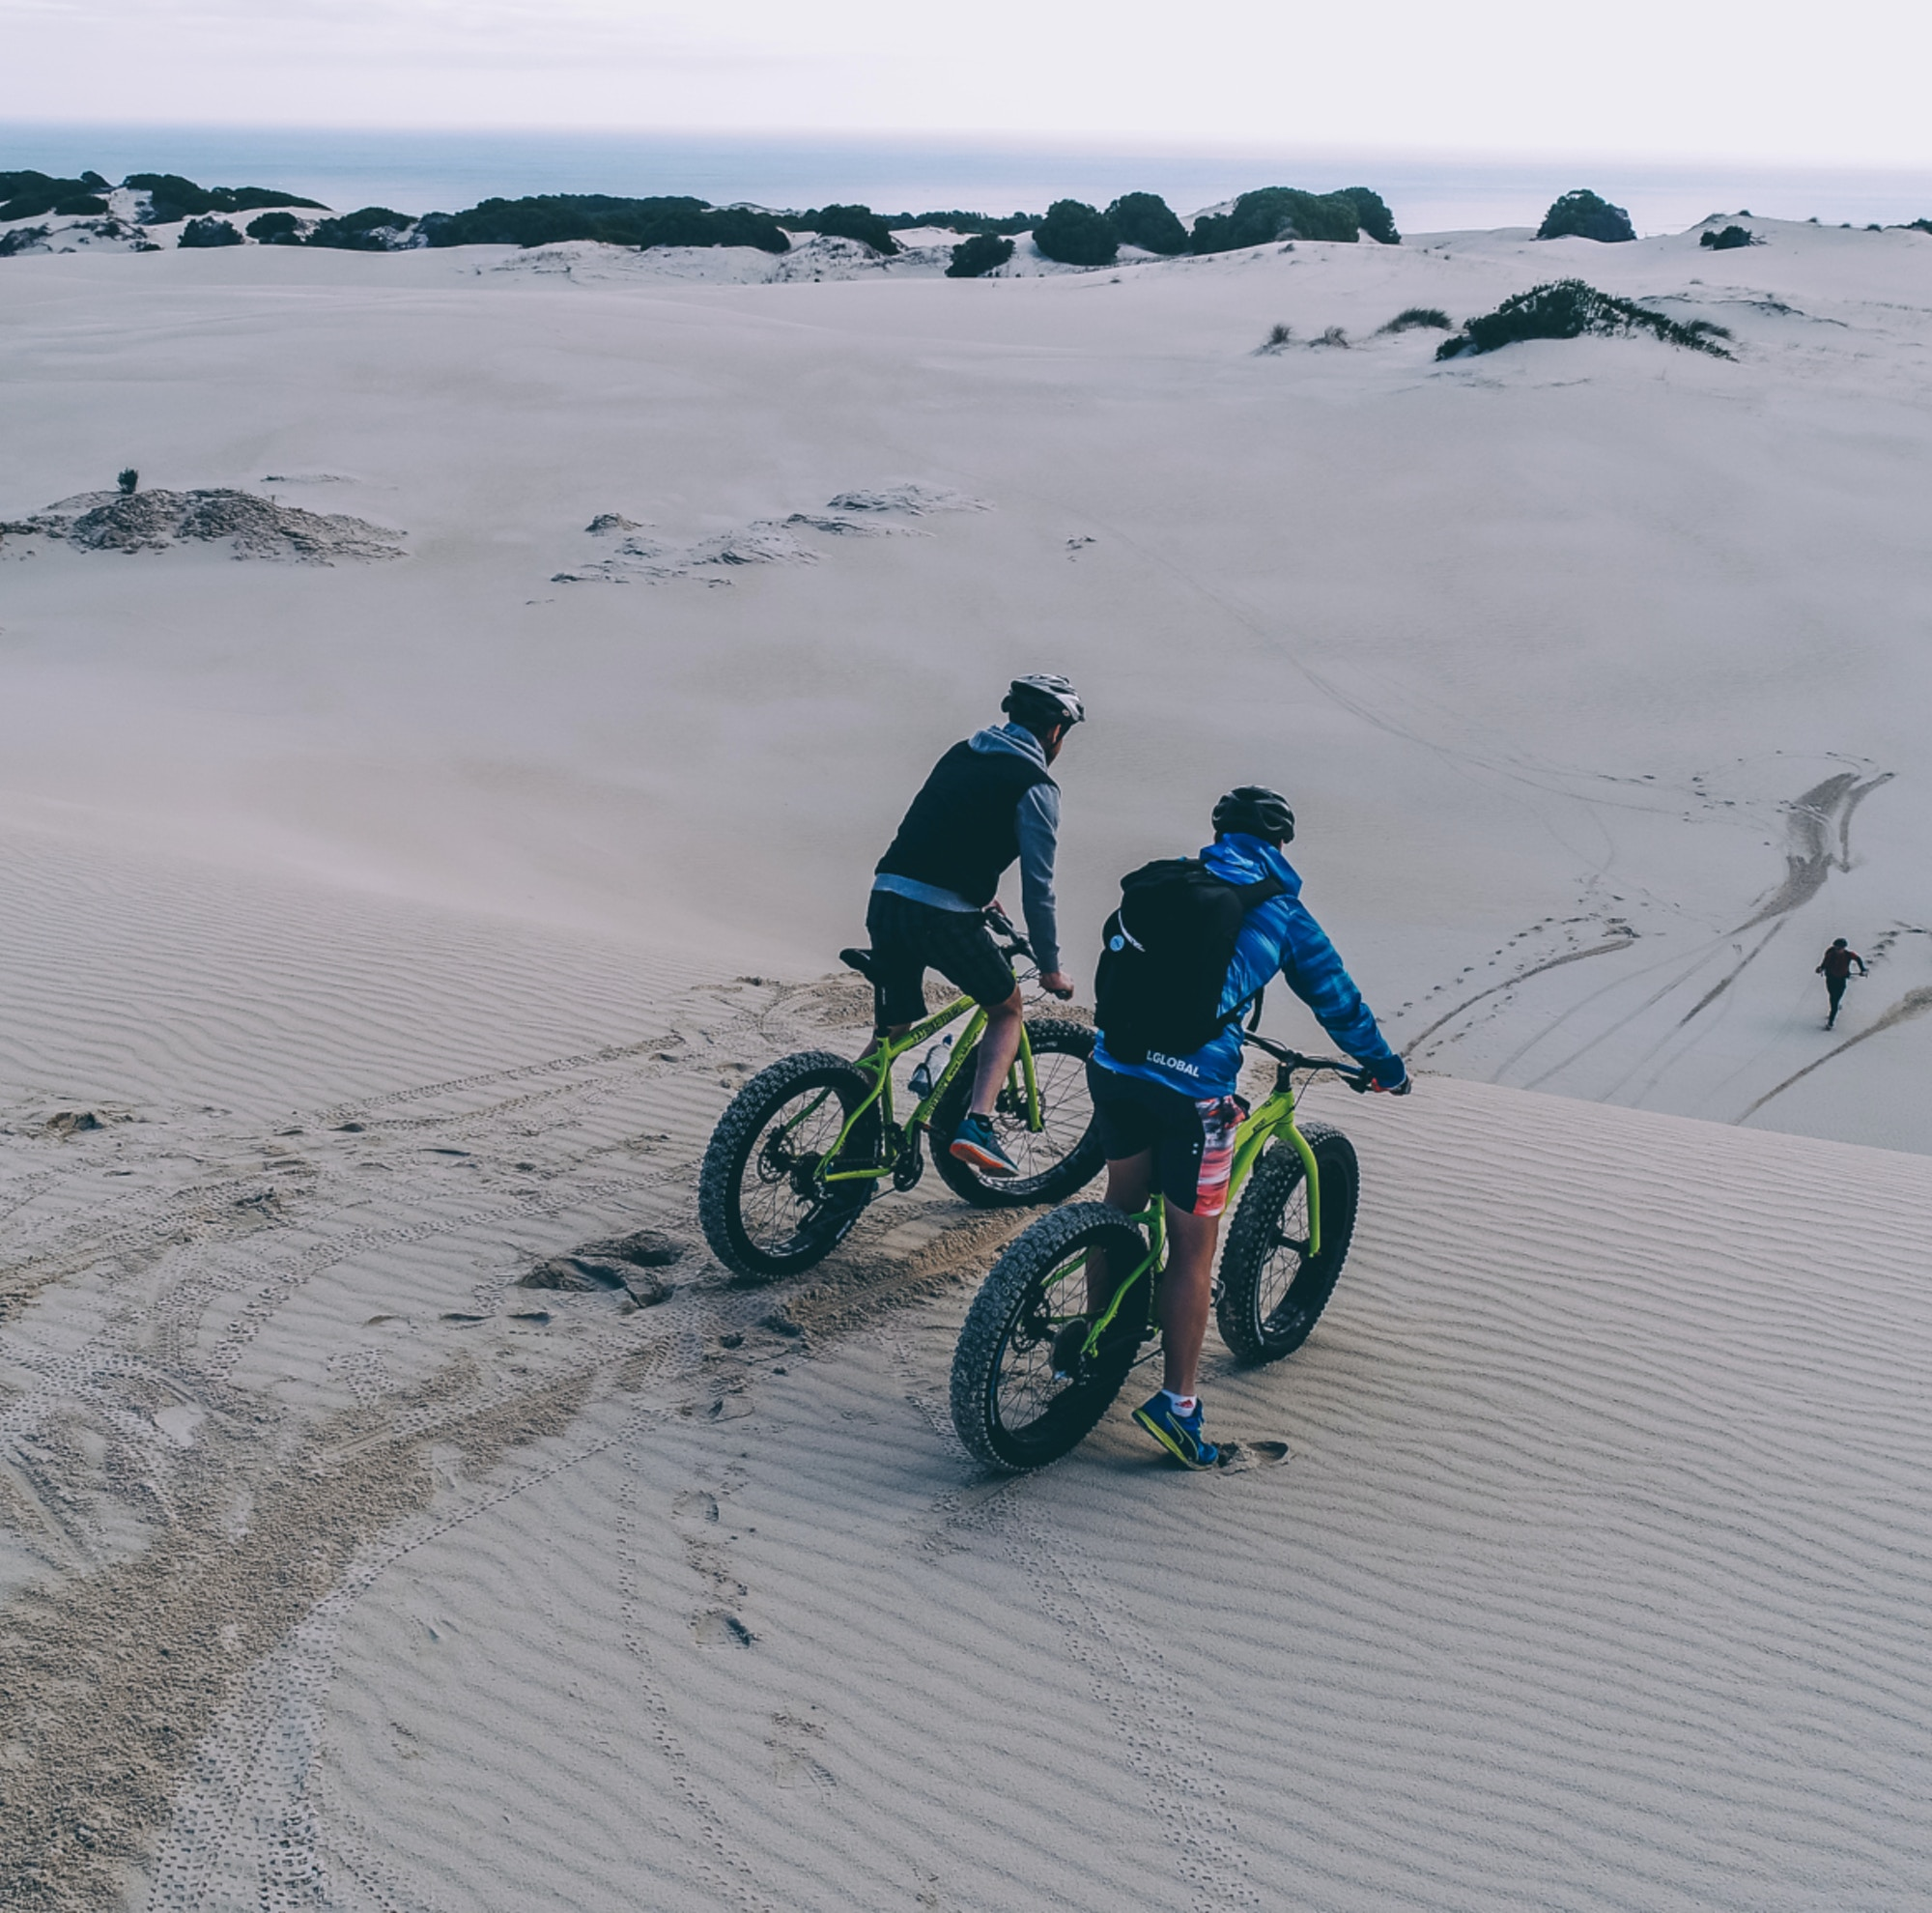 Fat Biking in the dunes of Gansbaai Image Shawn Ugulu